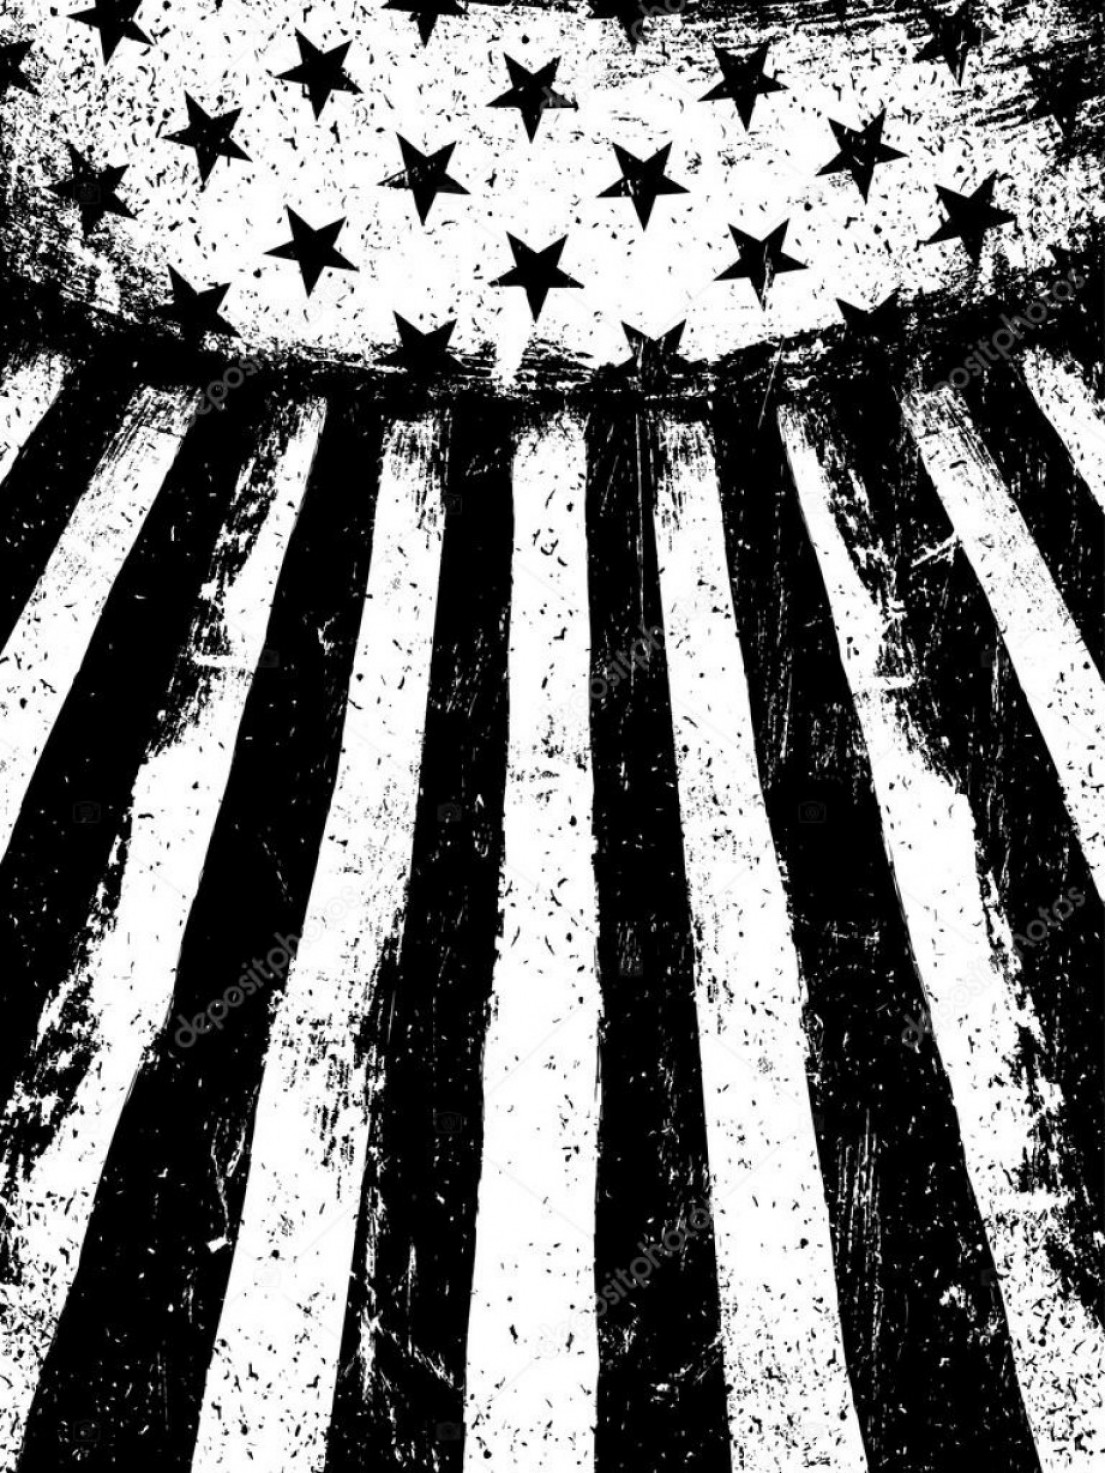 Rustic American Flag Vector: Stock Illustration American Flag Grunge Background